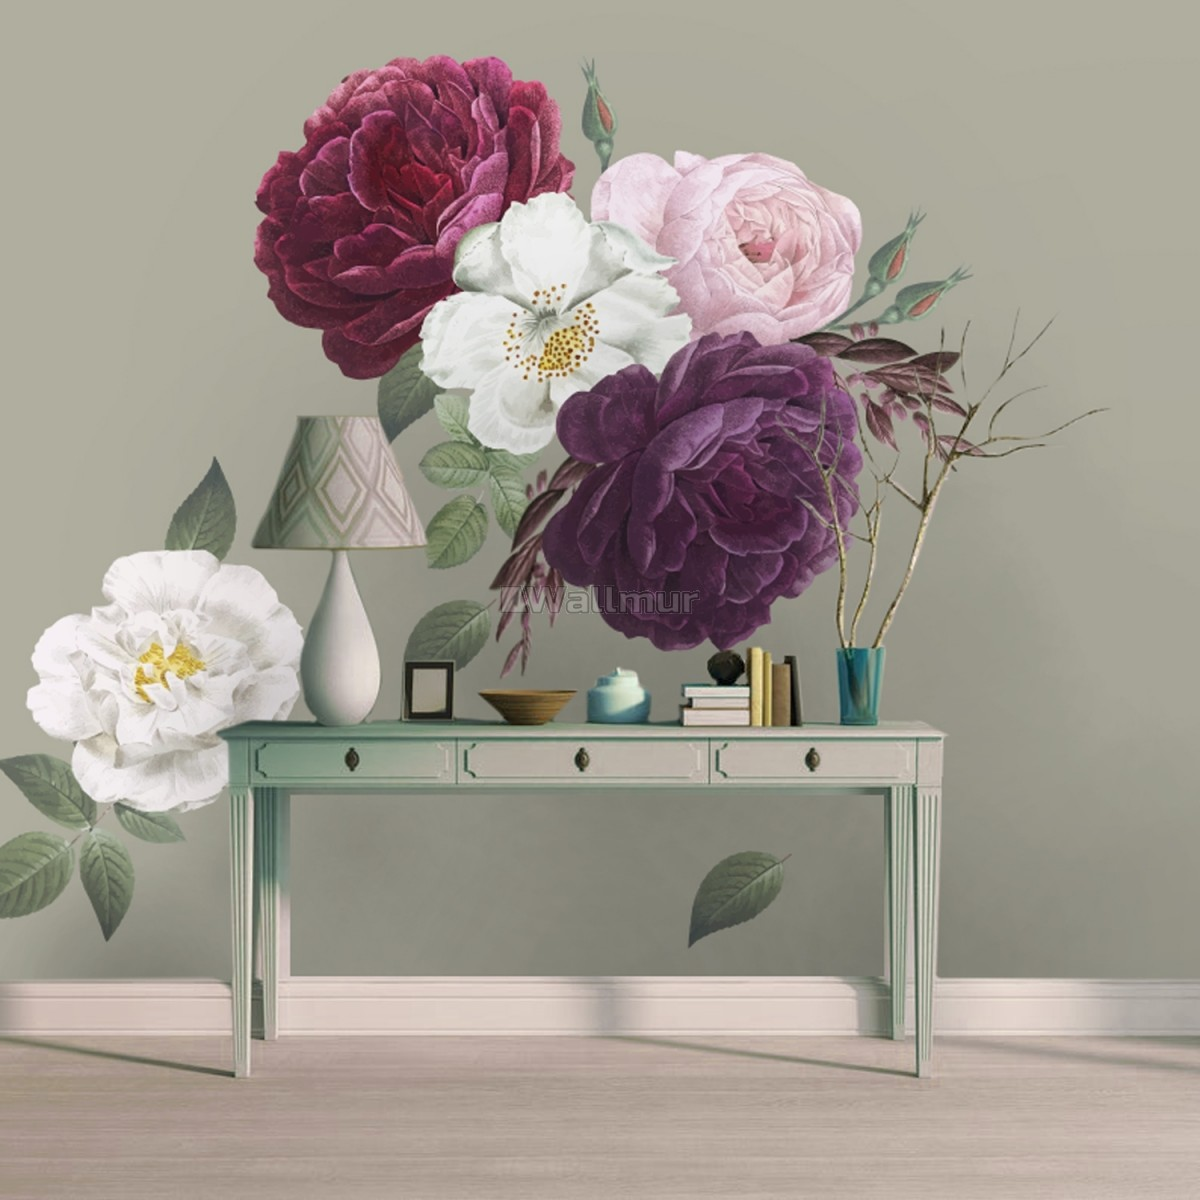 Colorful Peony and White Daisy Floral Bouqets Wall Decal Sticker